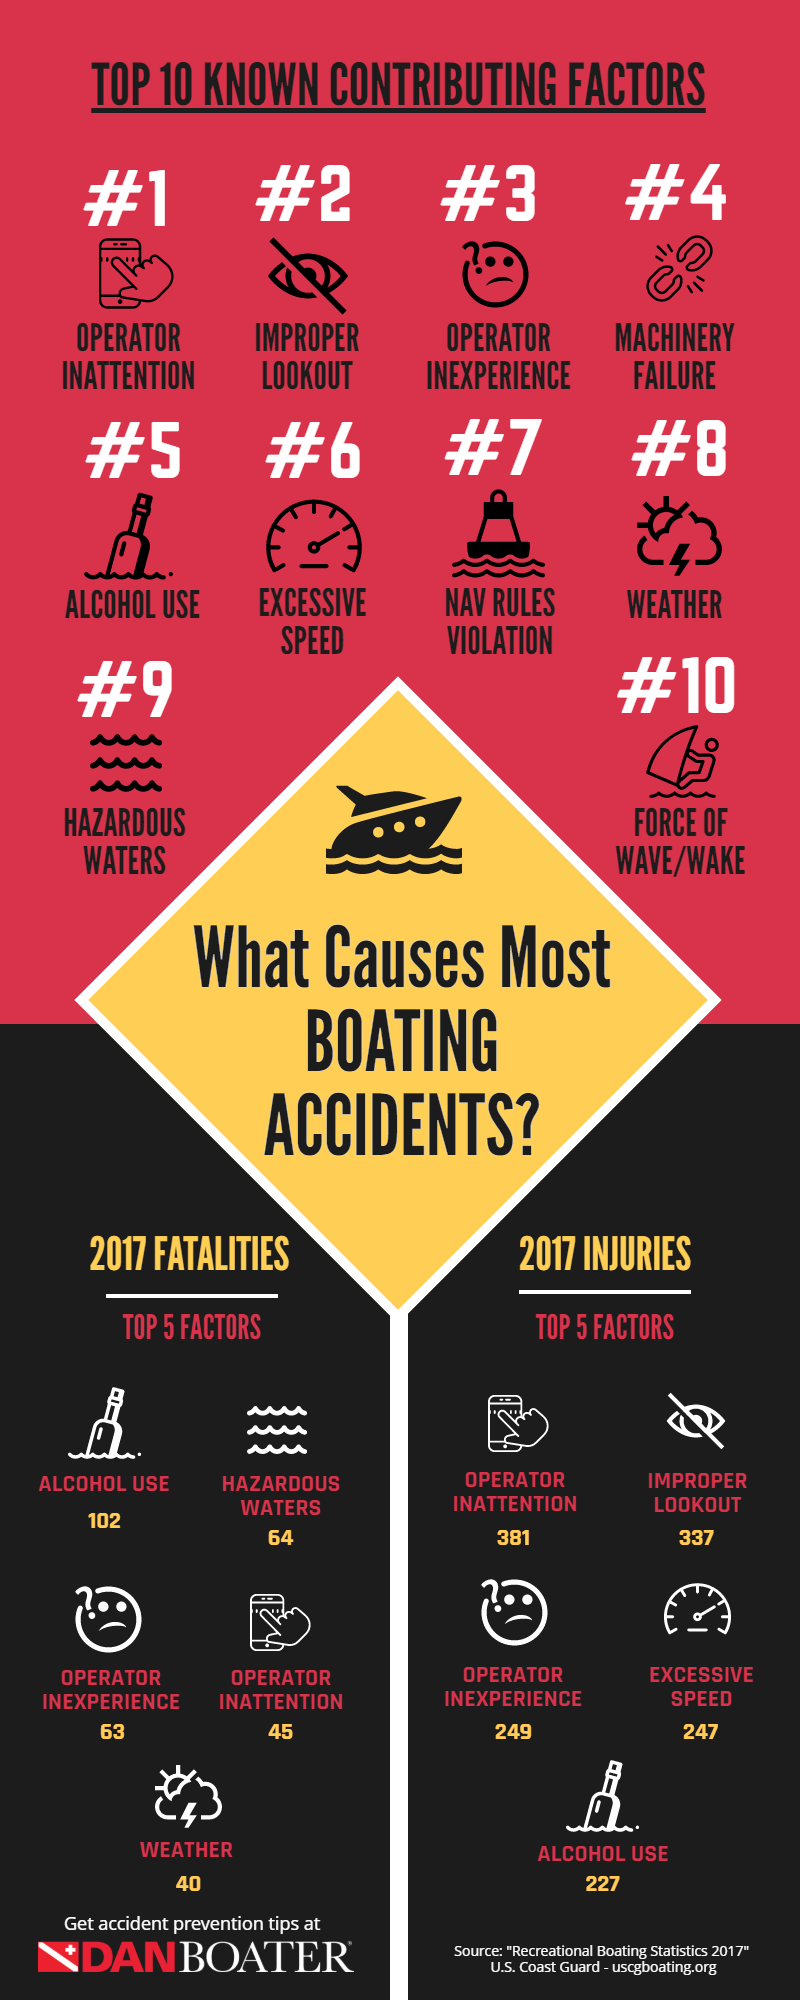 What Causes Most Boating Accidents? (infographic)